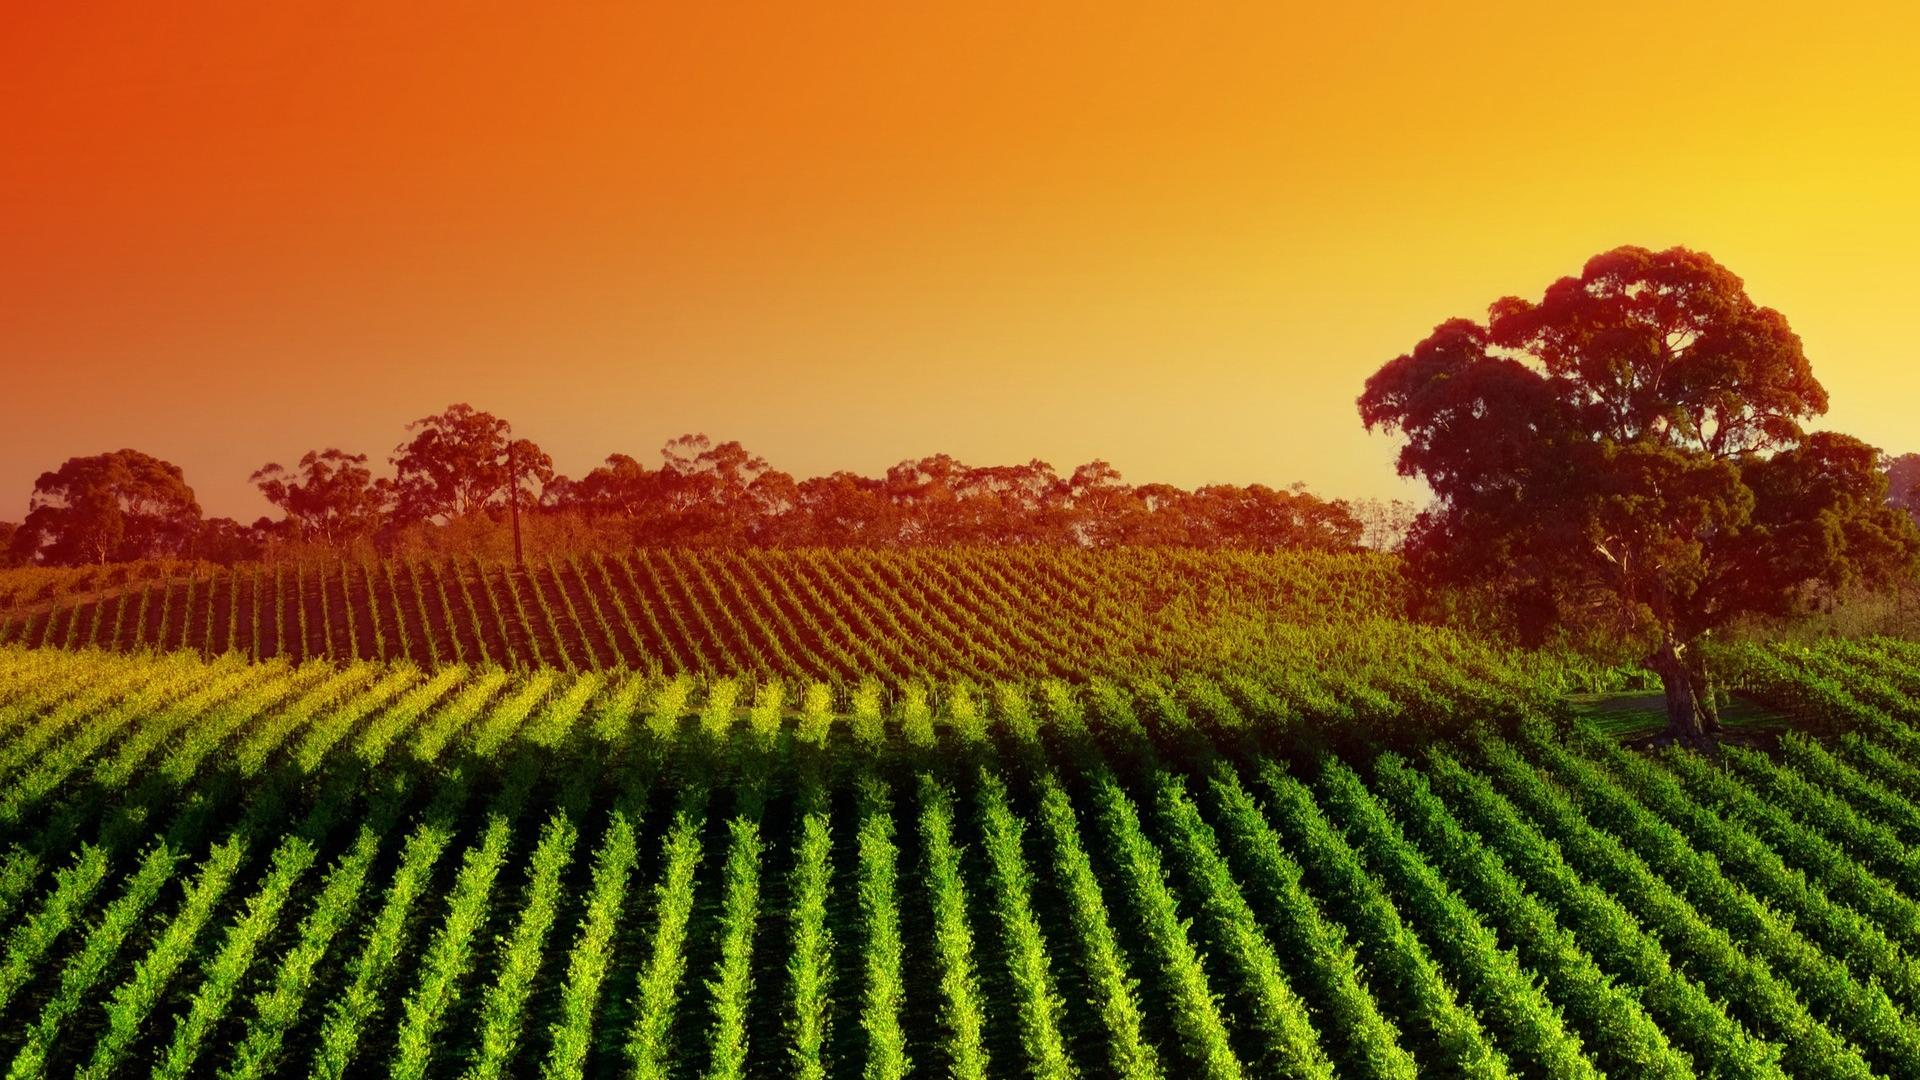 Landscapes nature fields sunlight vineyard wallpaper